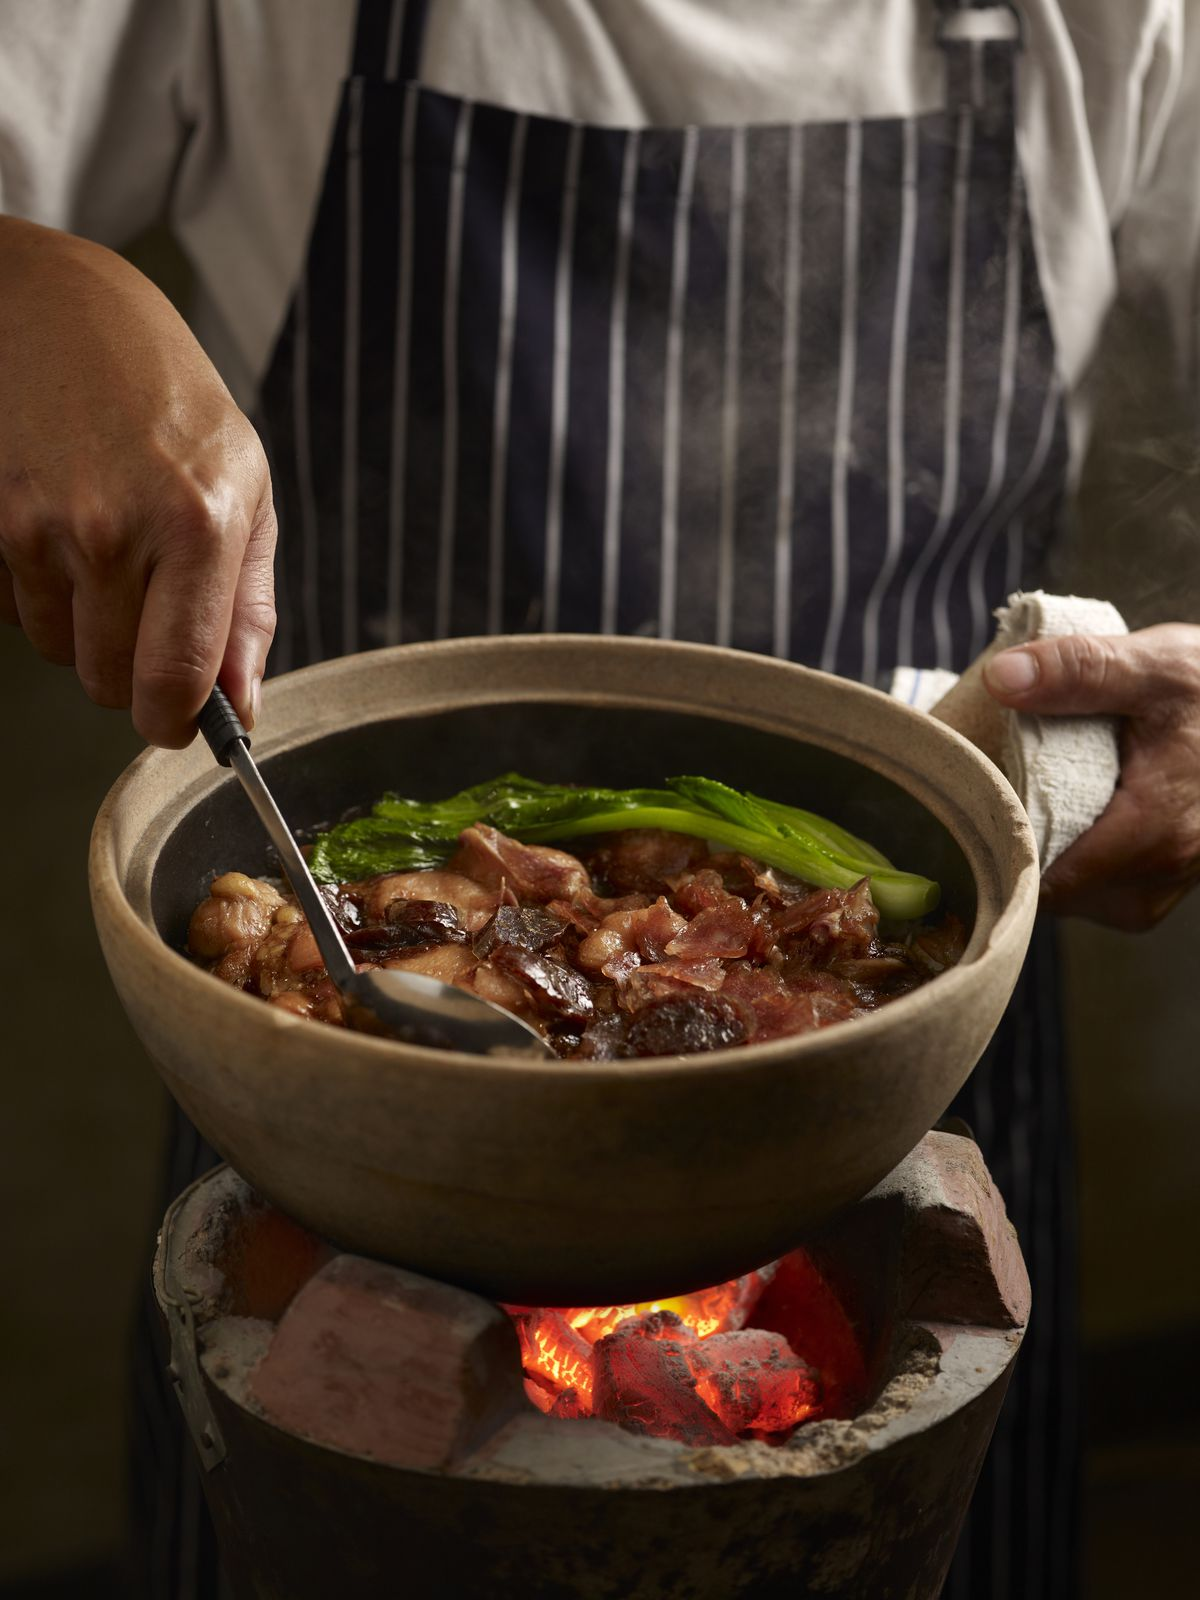 Geylang Claypot Rice serves Southeast Asian rice dishes cooked in traditional claypots.